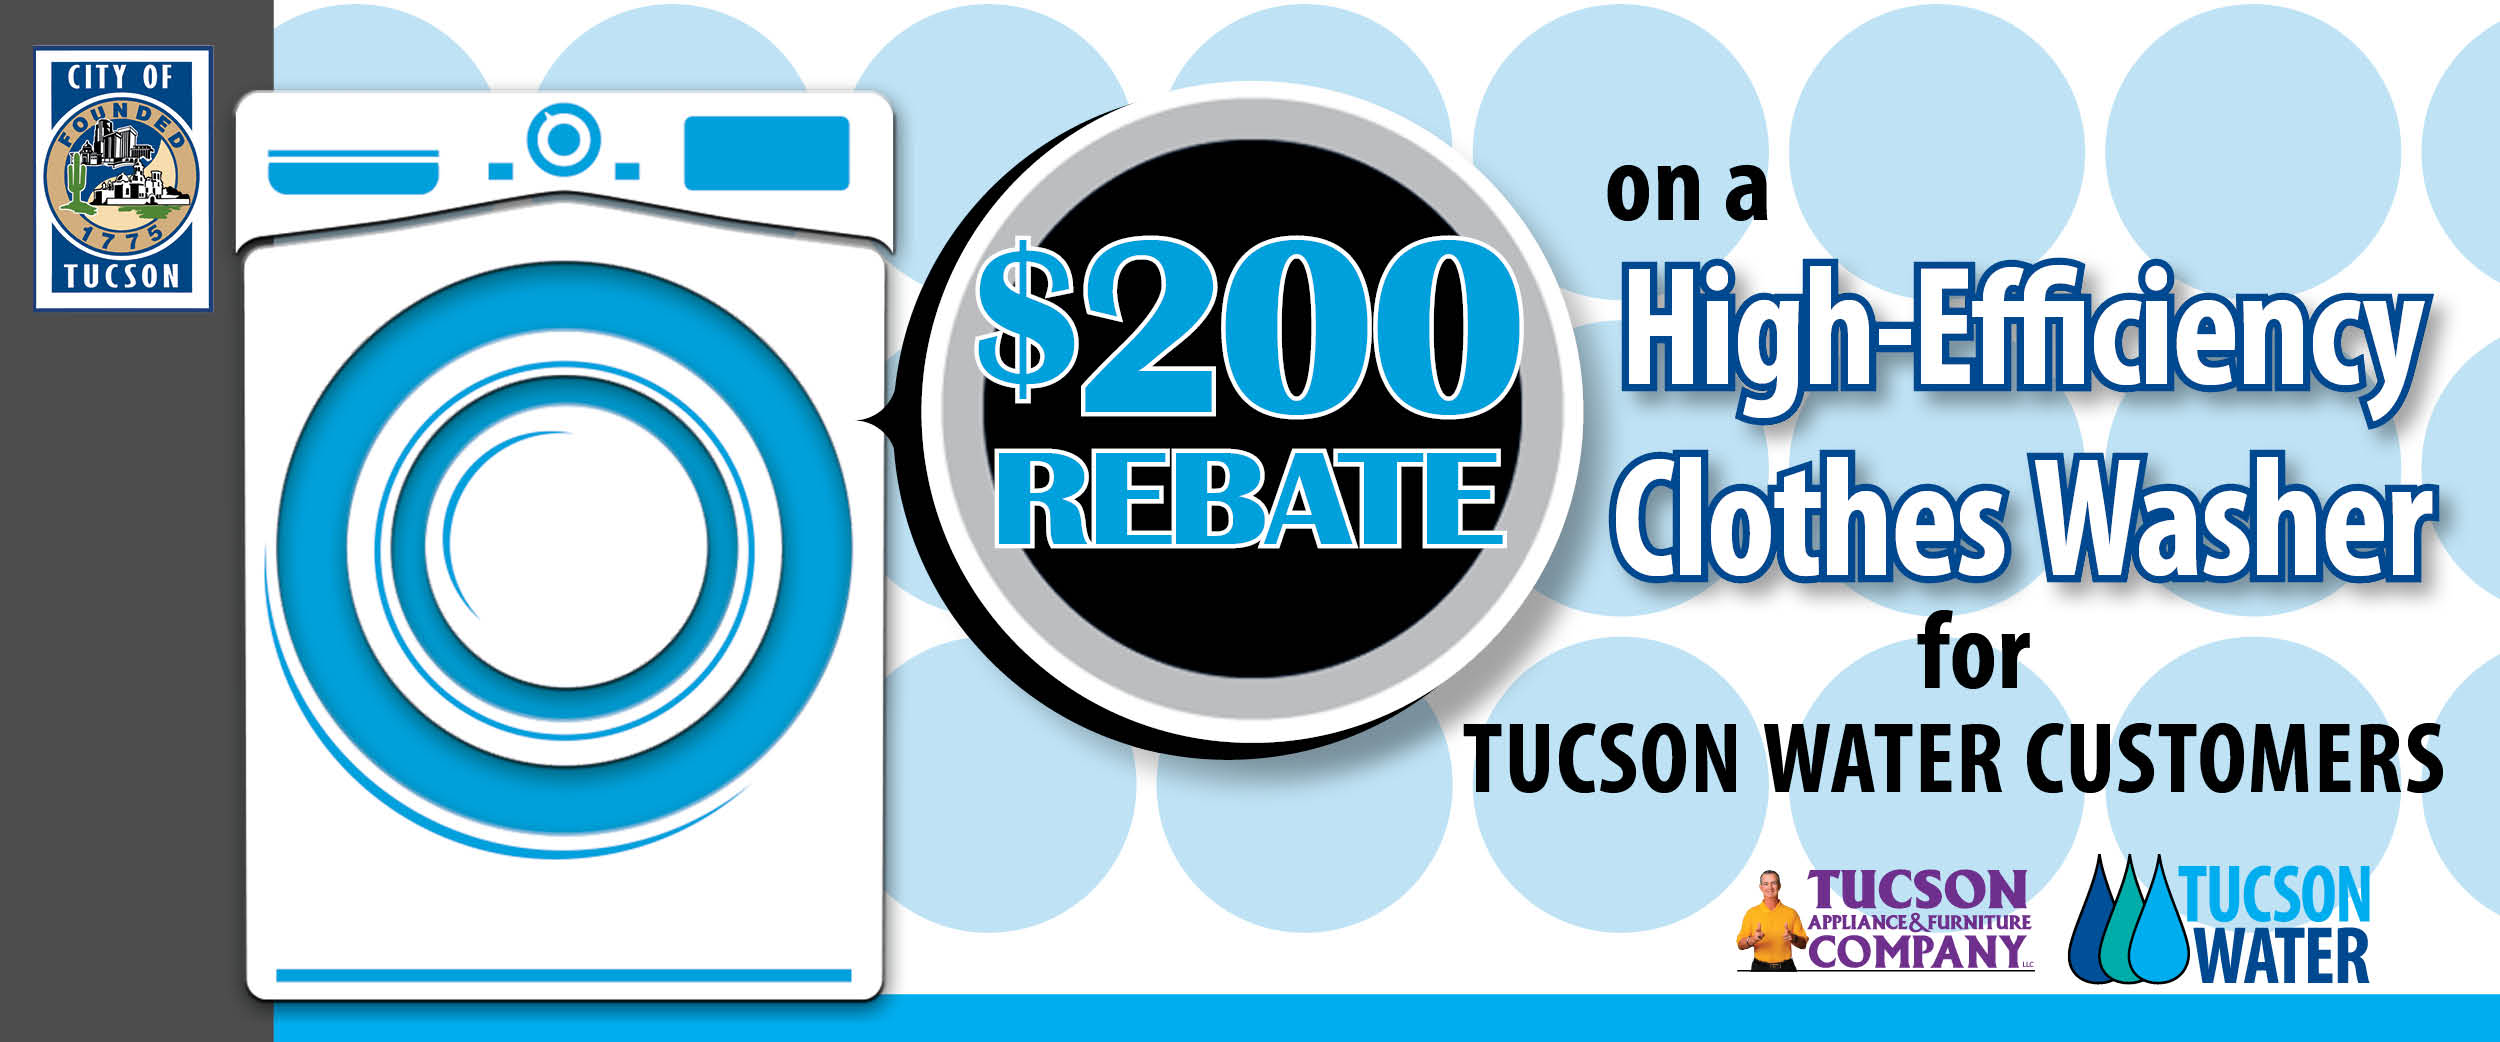 Tucson Water Rebate